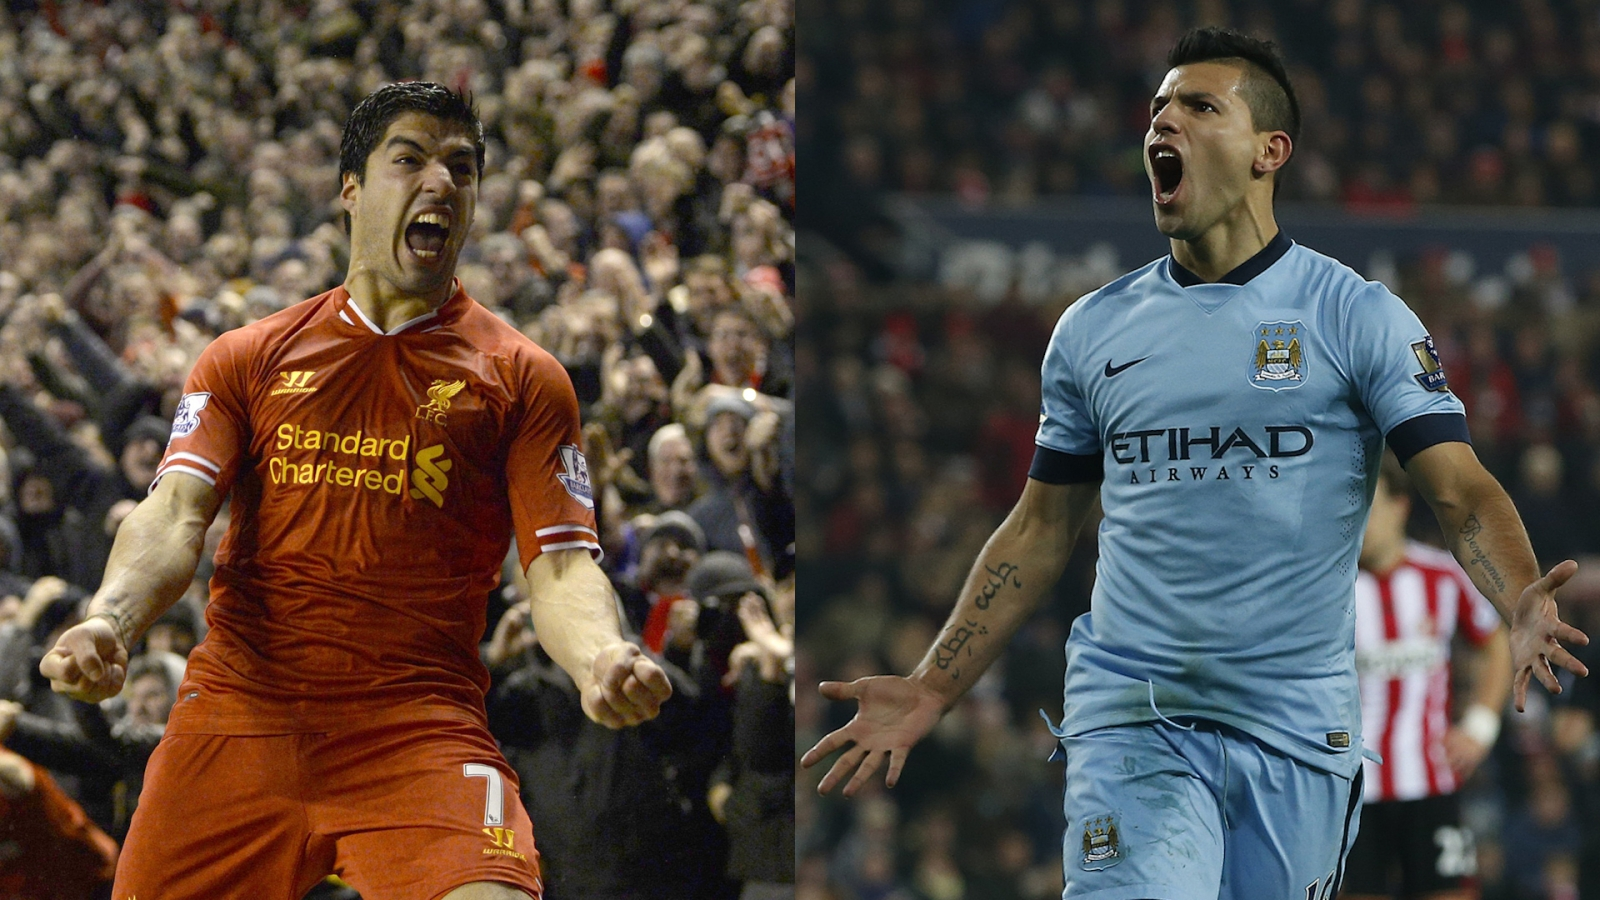 Sport Spotlight: Is Sergio Aguero the new Luis Suarez?